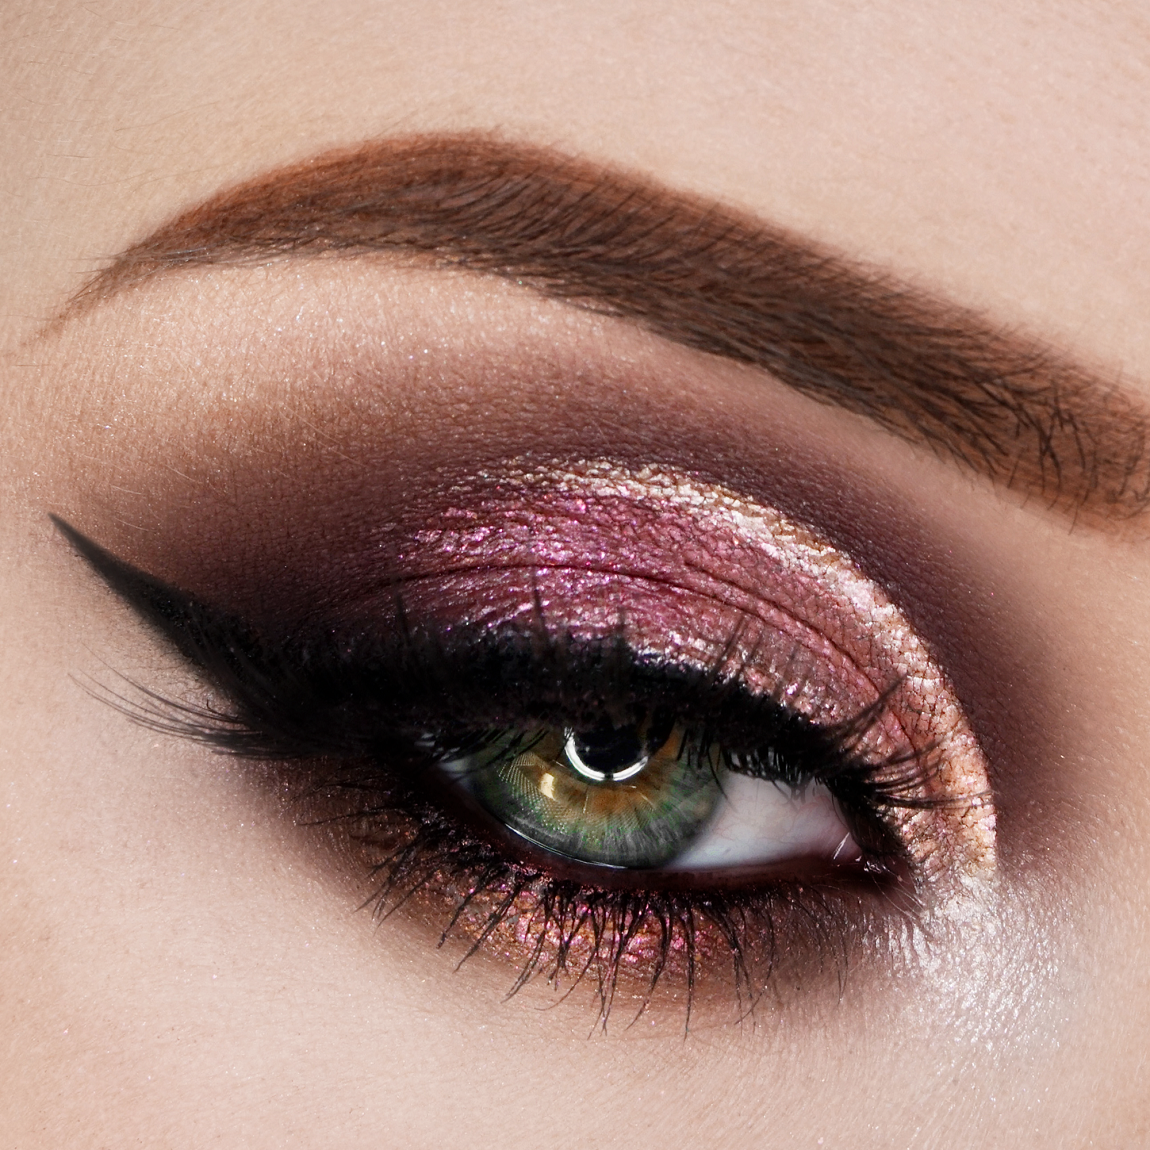 Spring eye make-up: discover the beauty of eye shadows rose and peach!